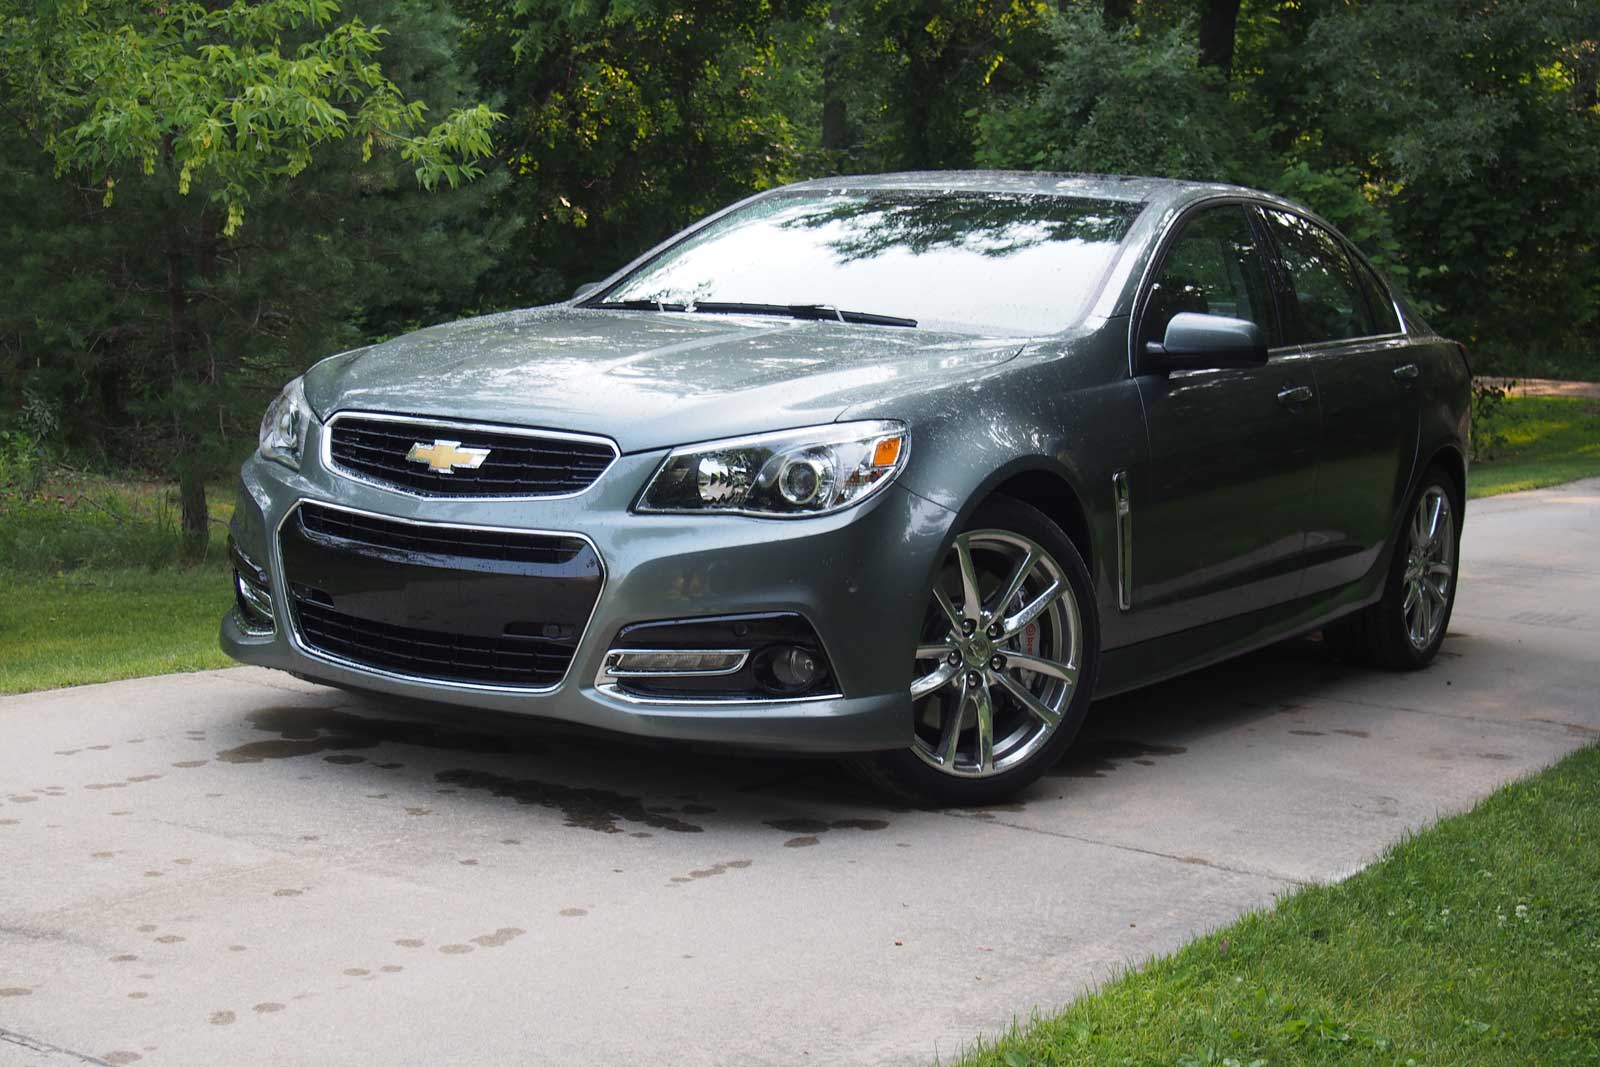 2015 chevrolet ss review autoguide 2015 chevrolet ss front 04 publicscrutiny Gallery